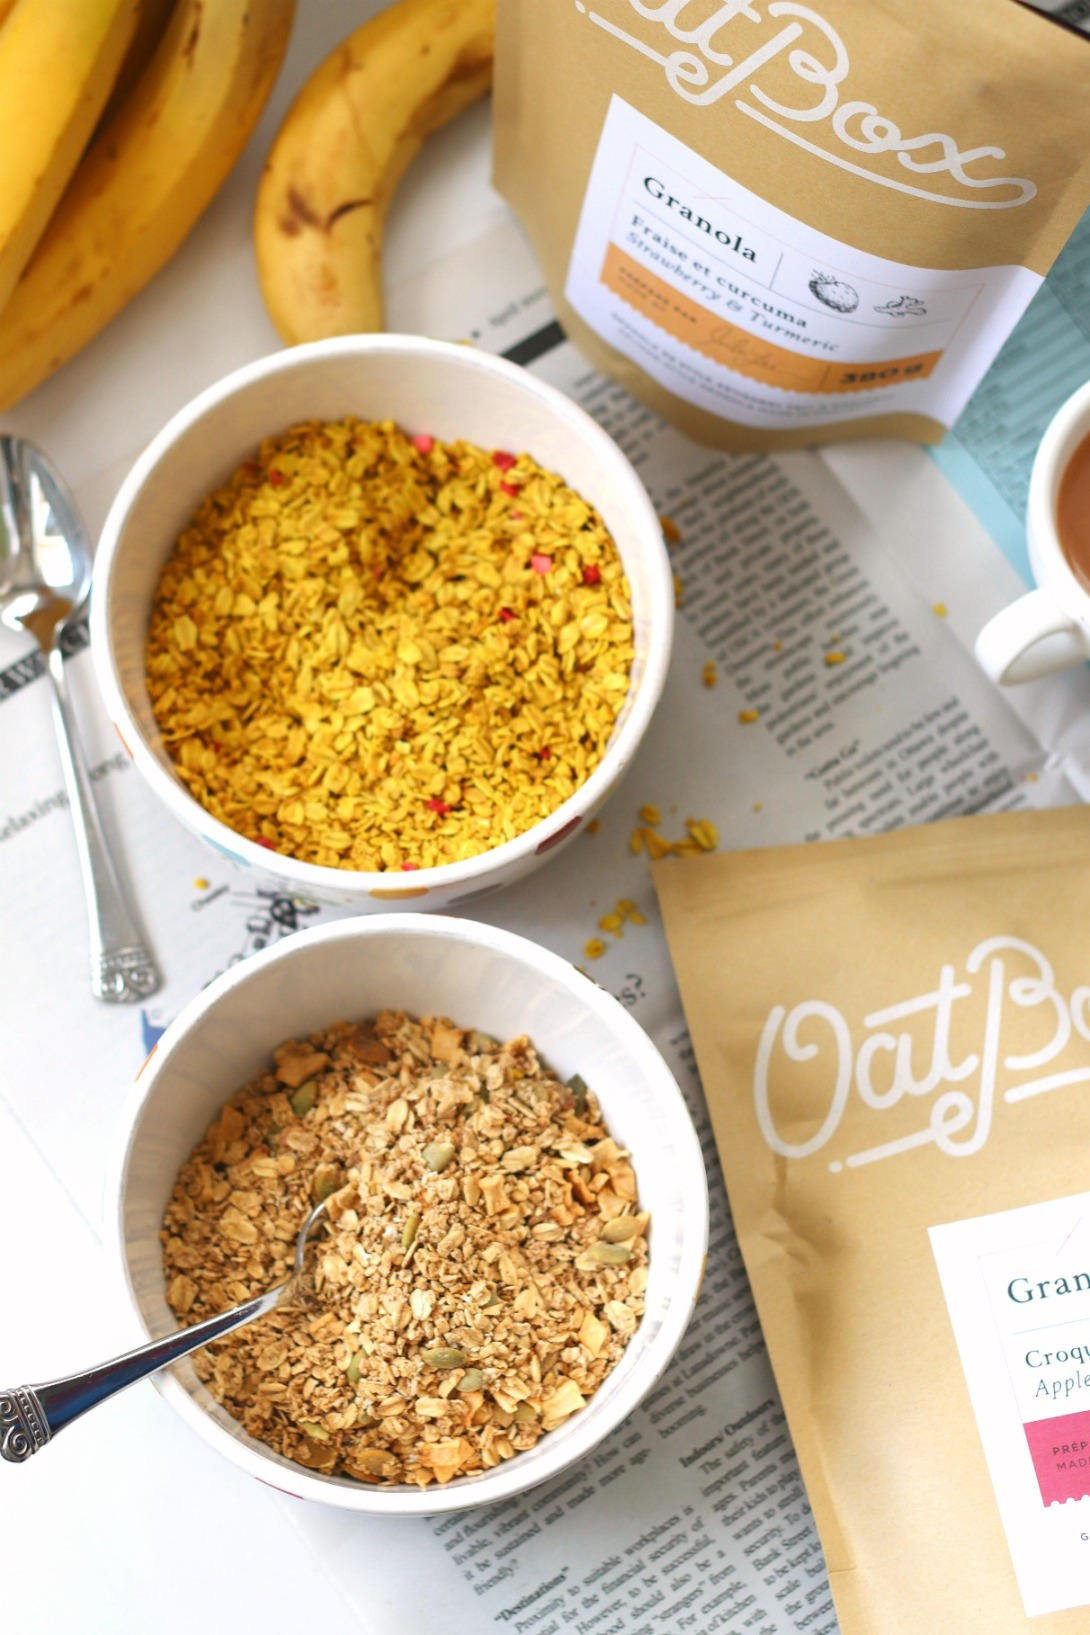 OatBox April 2019 both granola blends